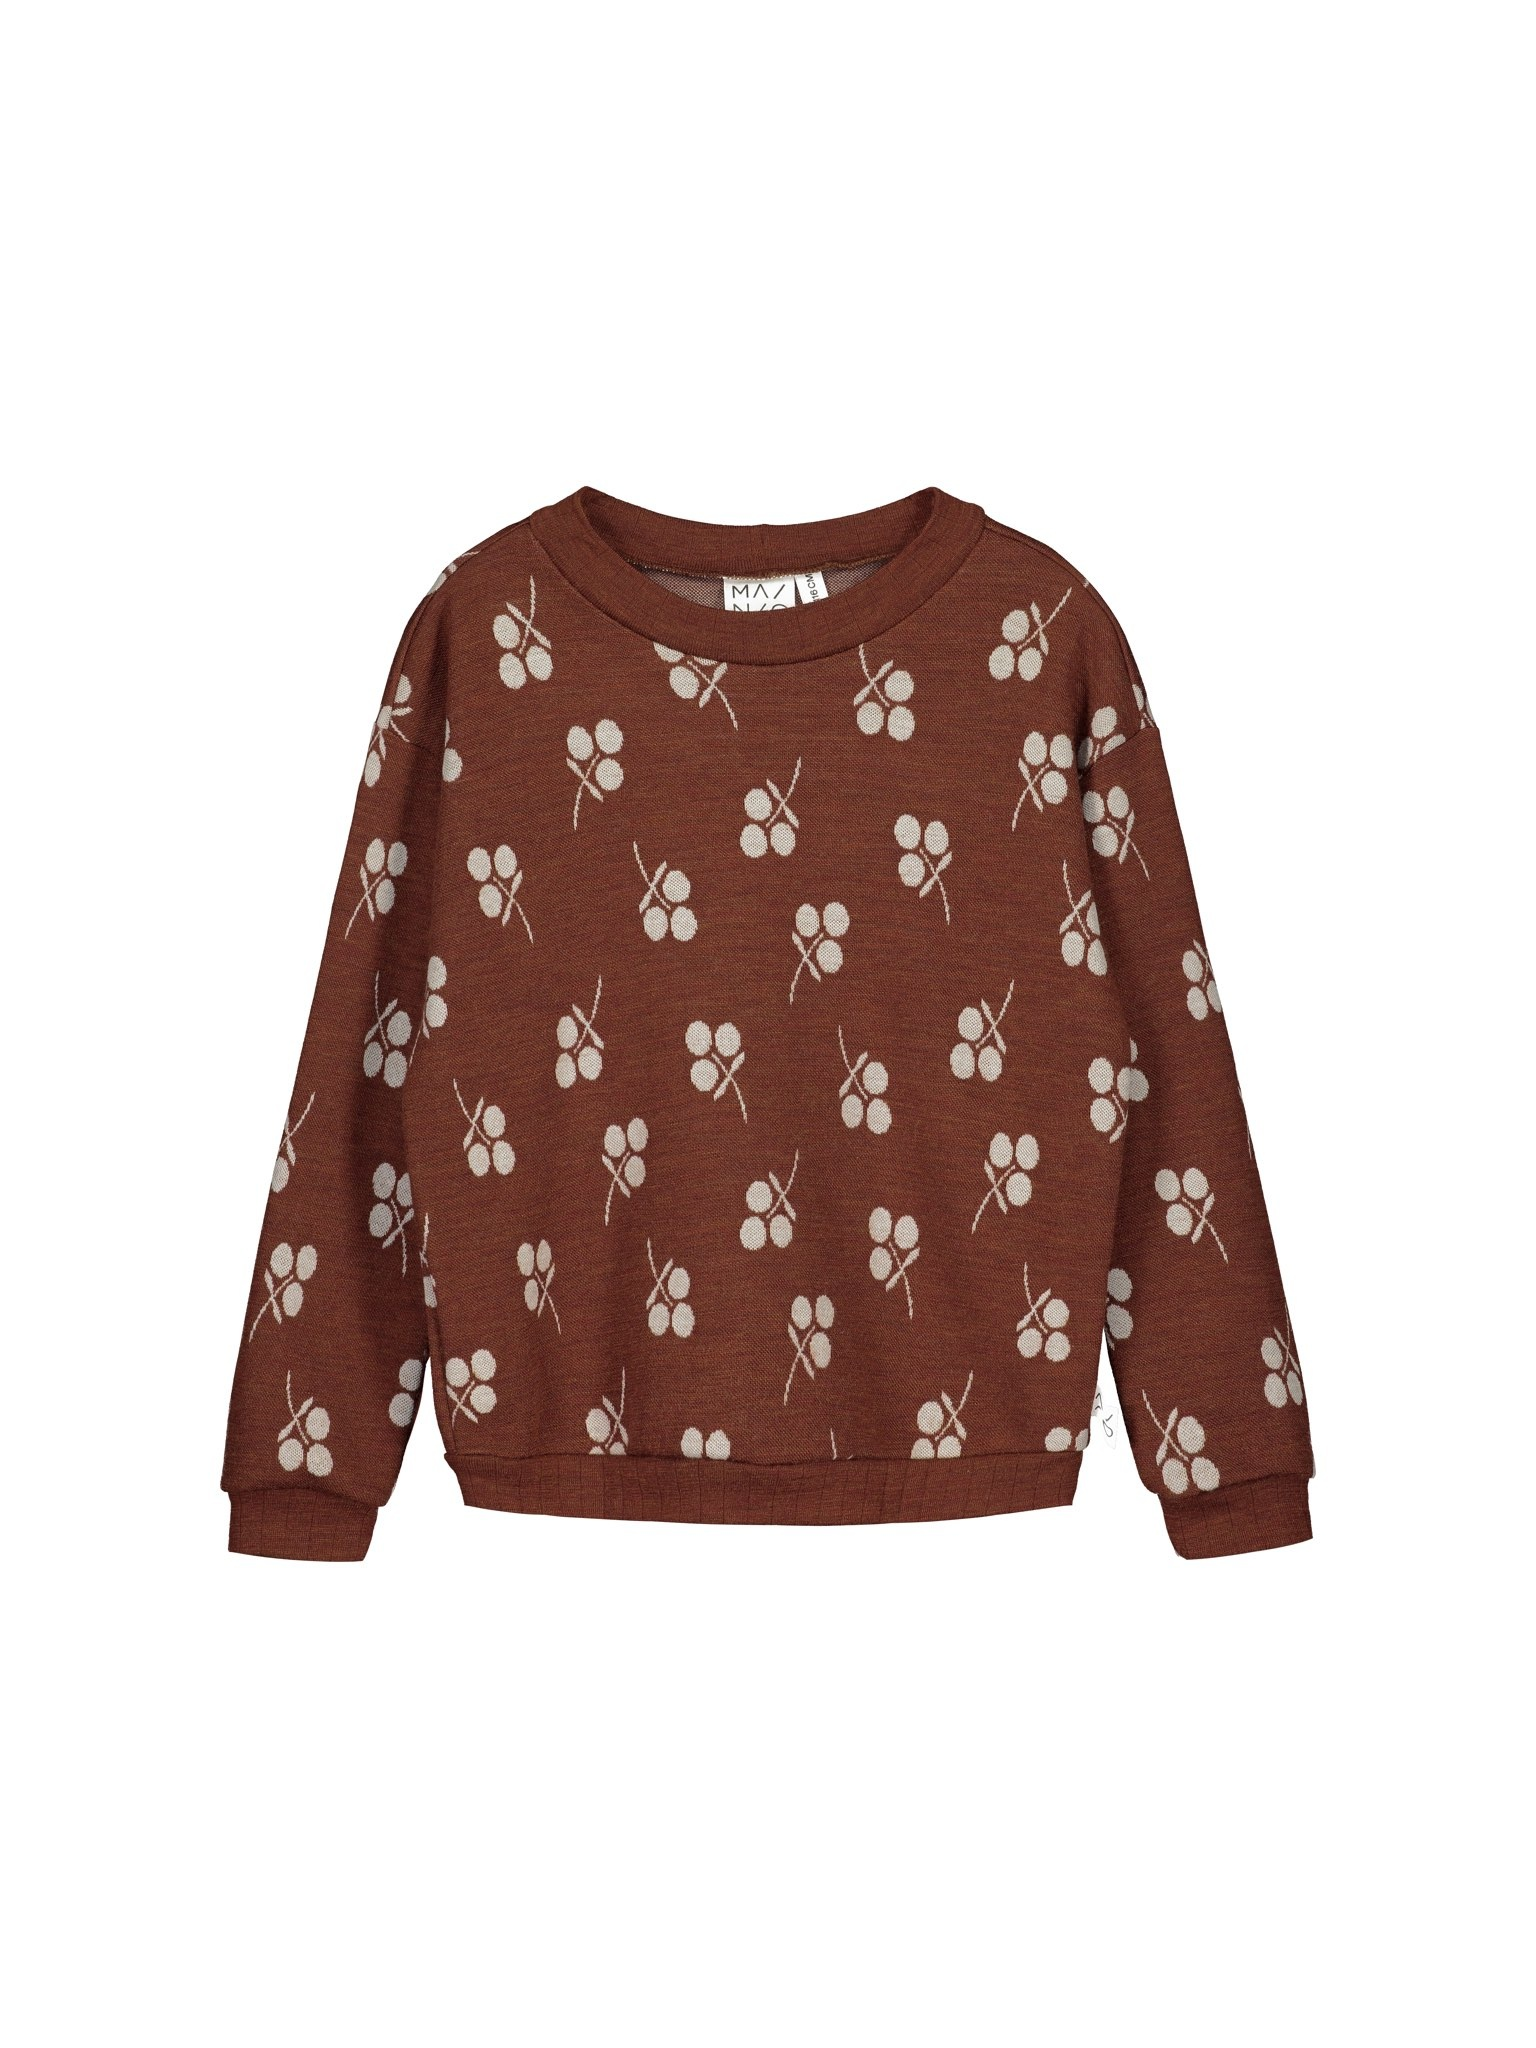 Merinowolle Pullover mit Jacquard-Muster